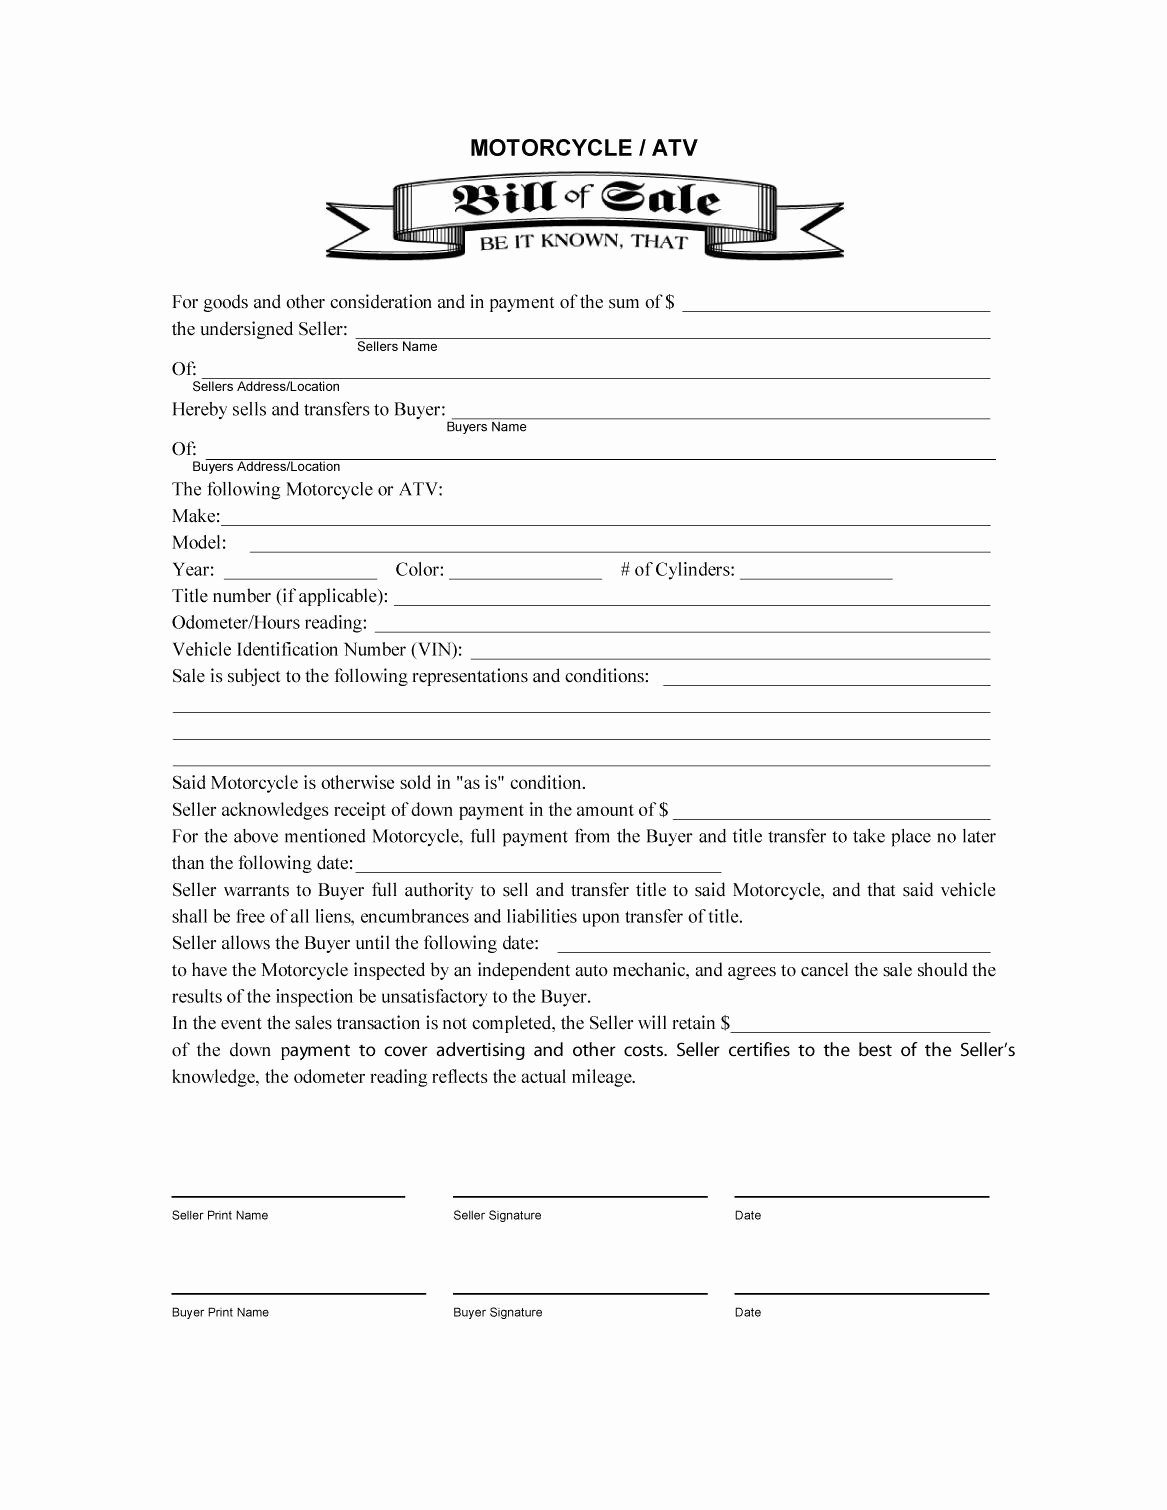 Truck Bill Of Sale Template Unique 45 Fee Printable Bill Of Sale Templates Car Boat Gun